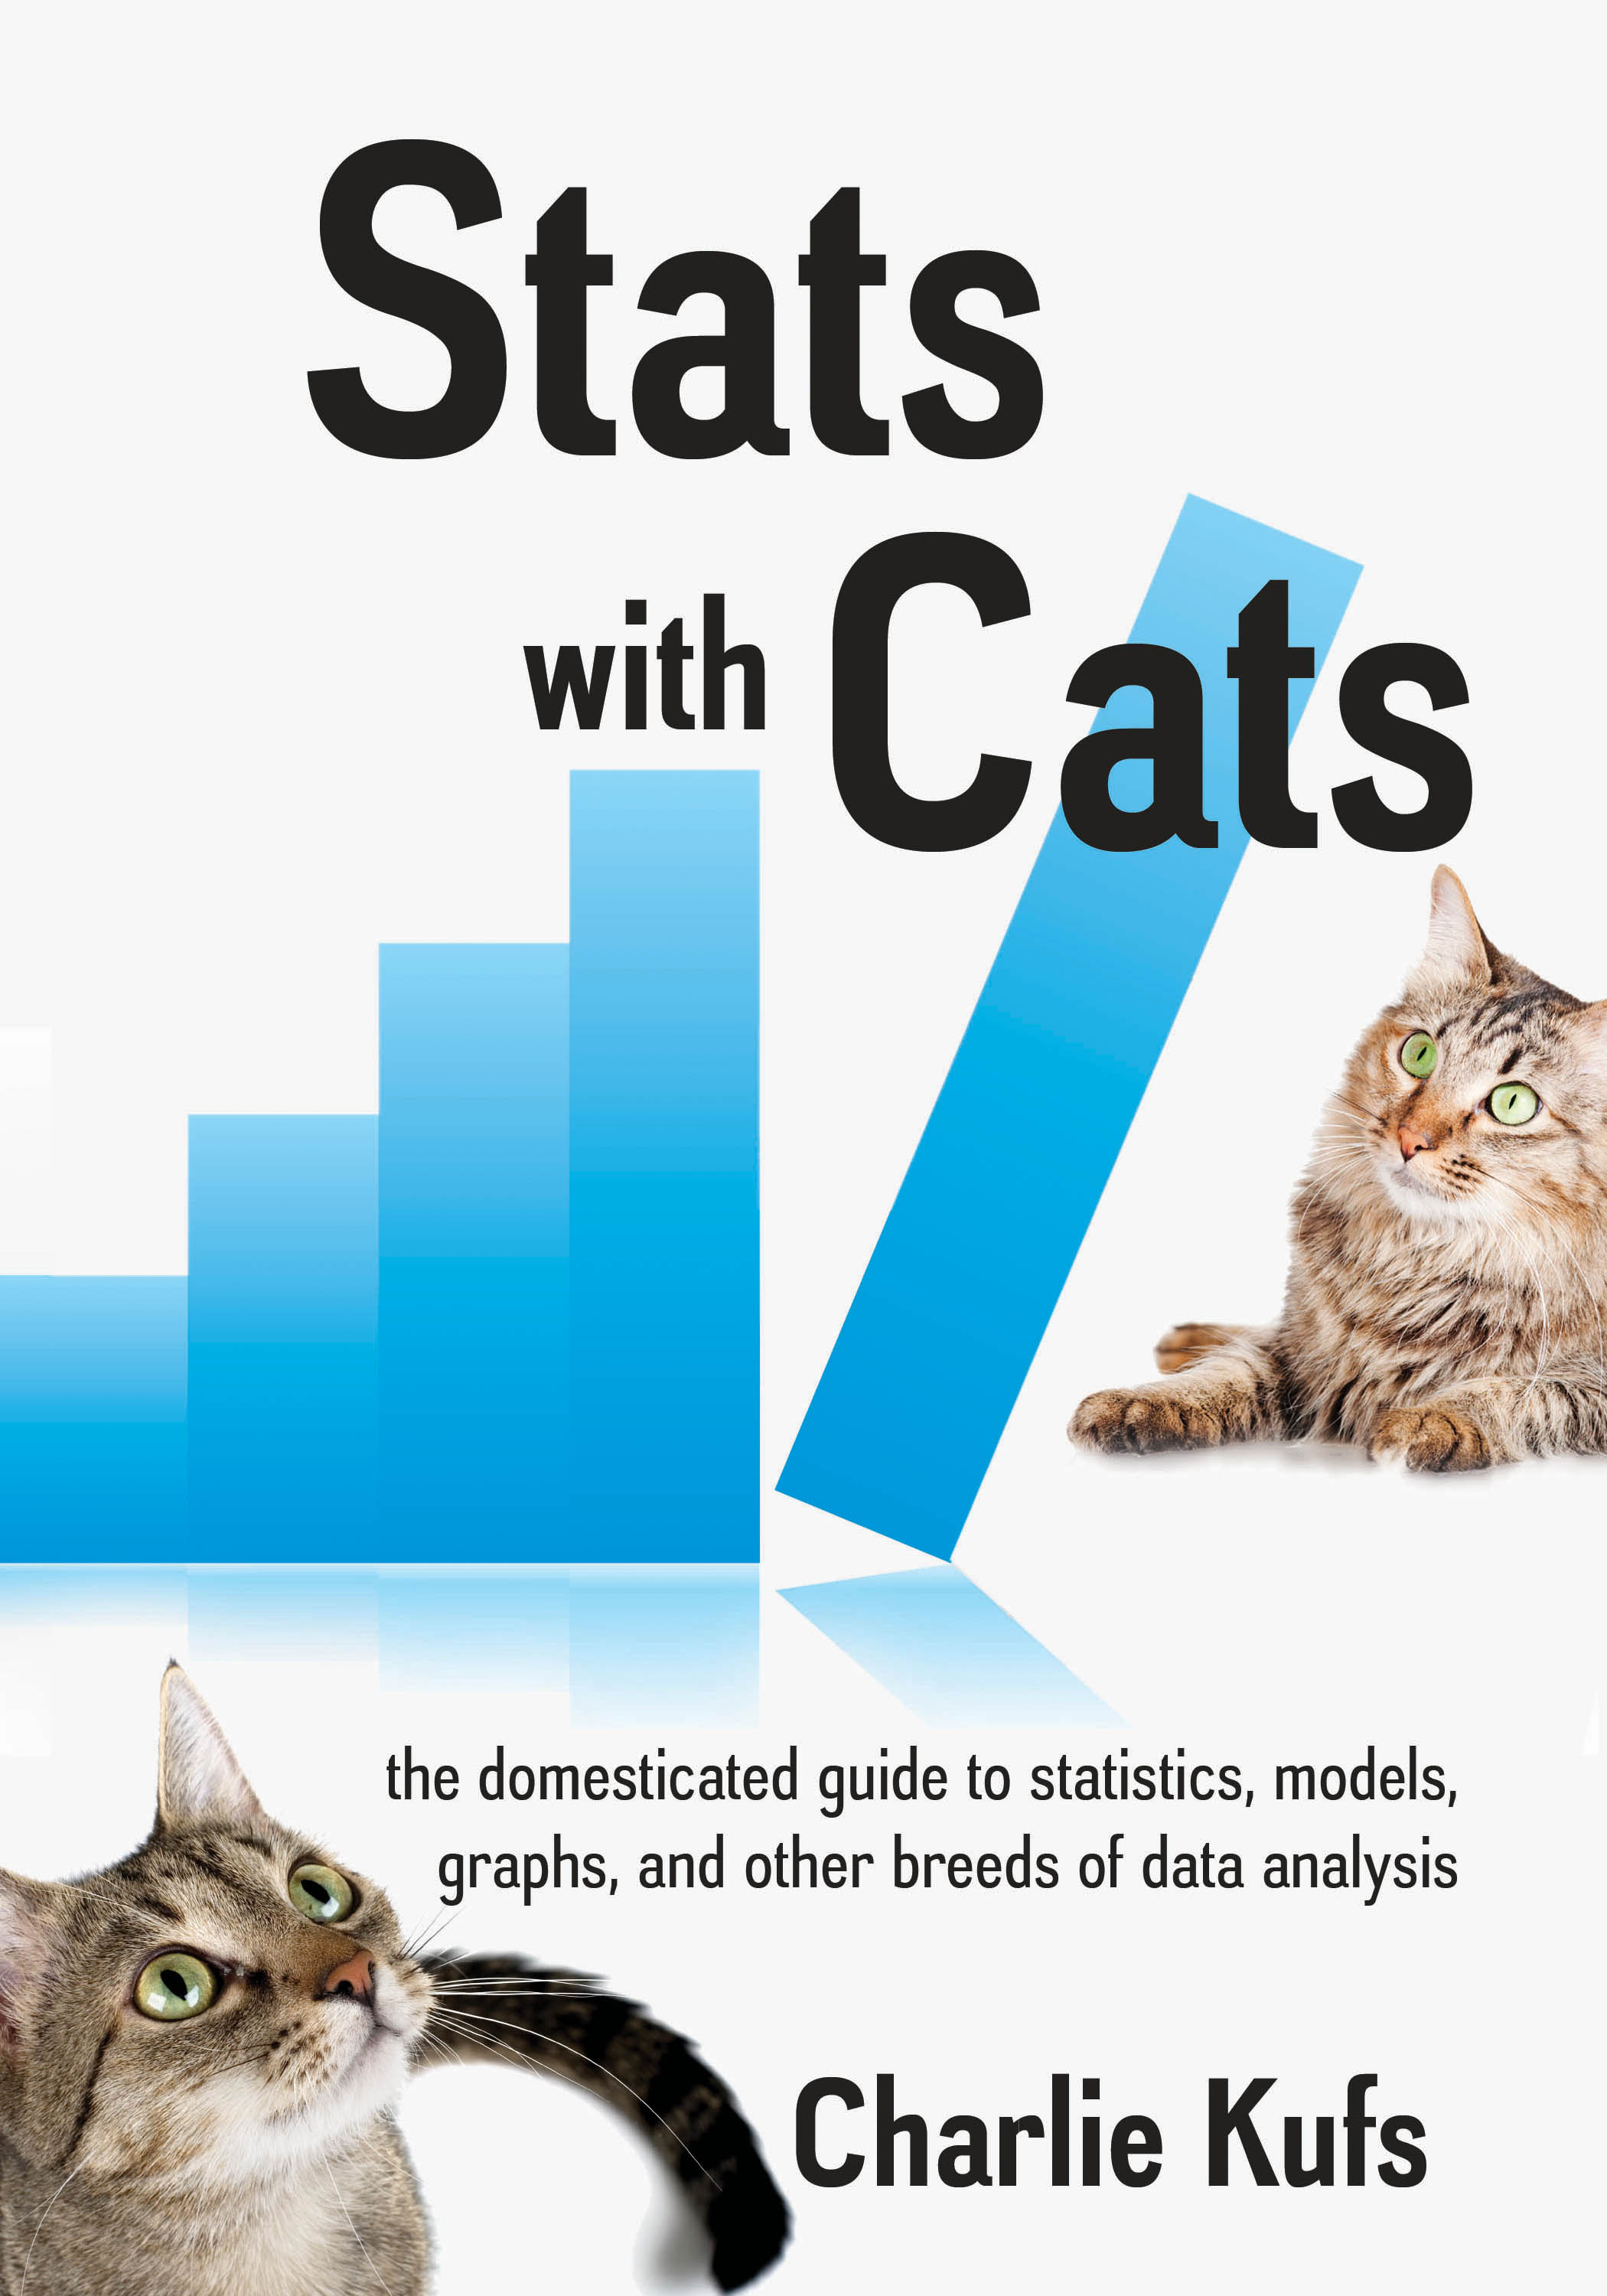 Stats With Cats: What's inside | Stats With Cats Blog